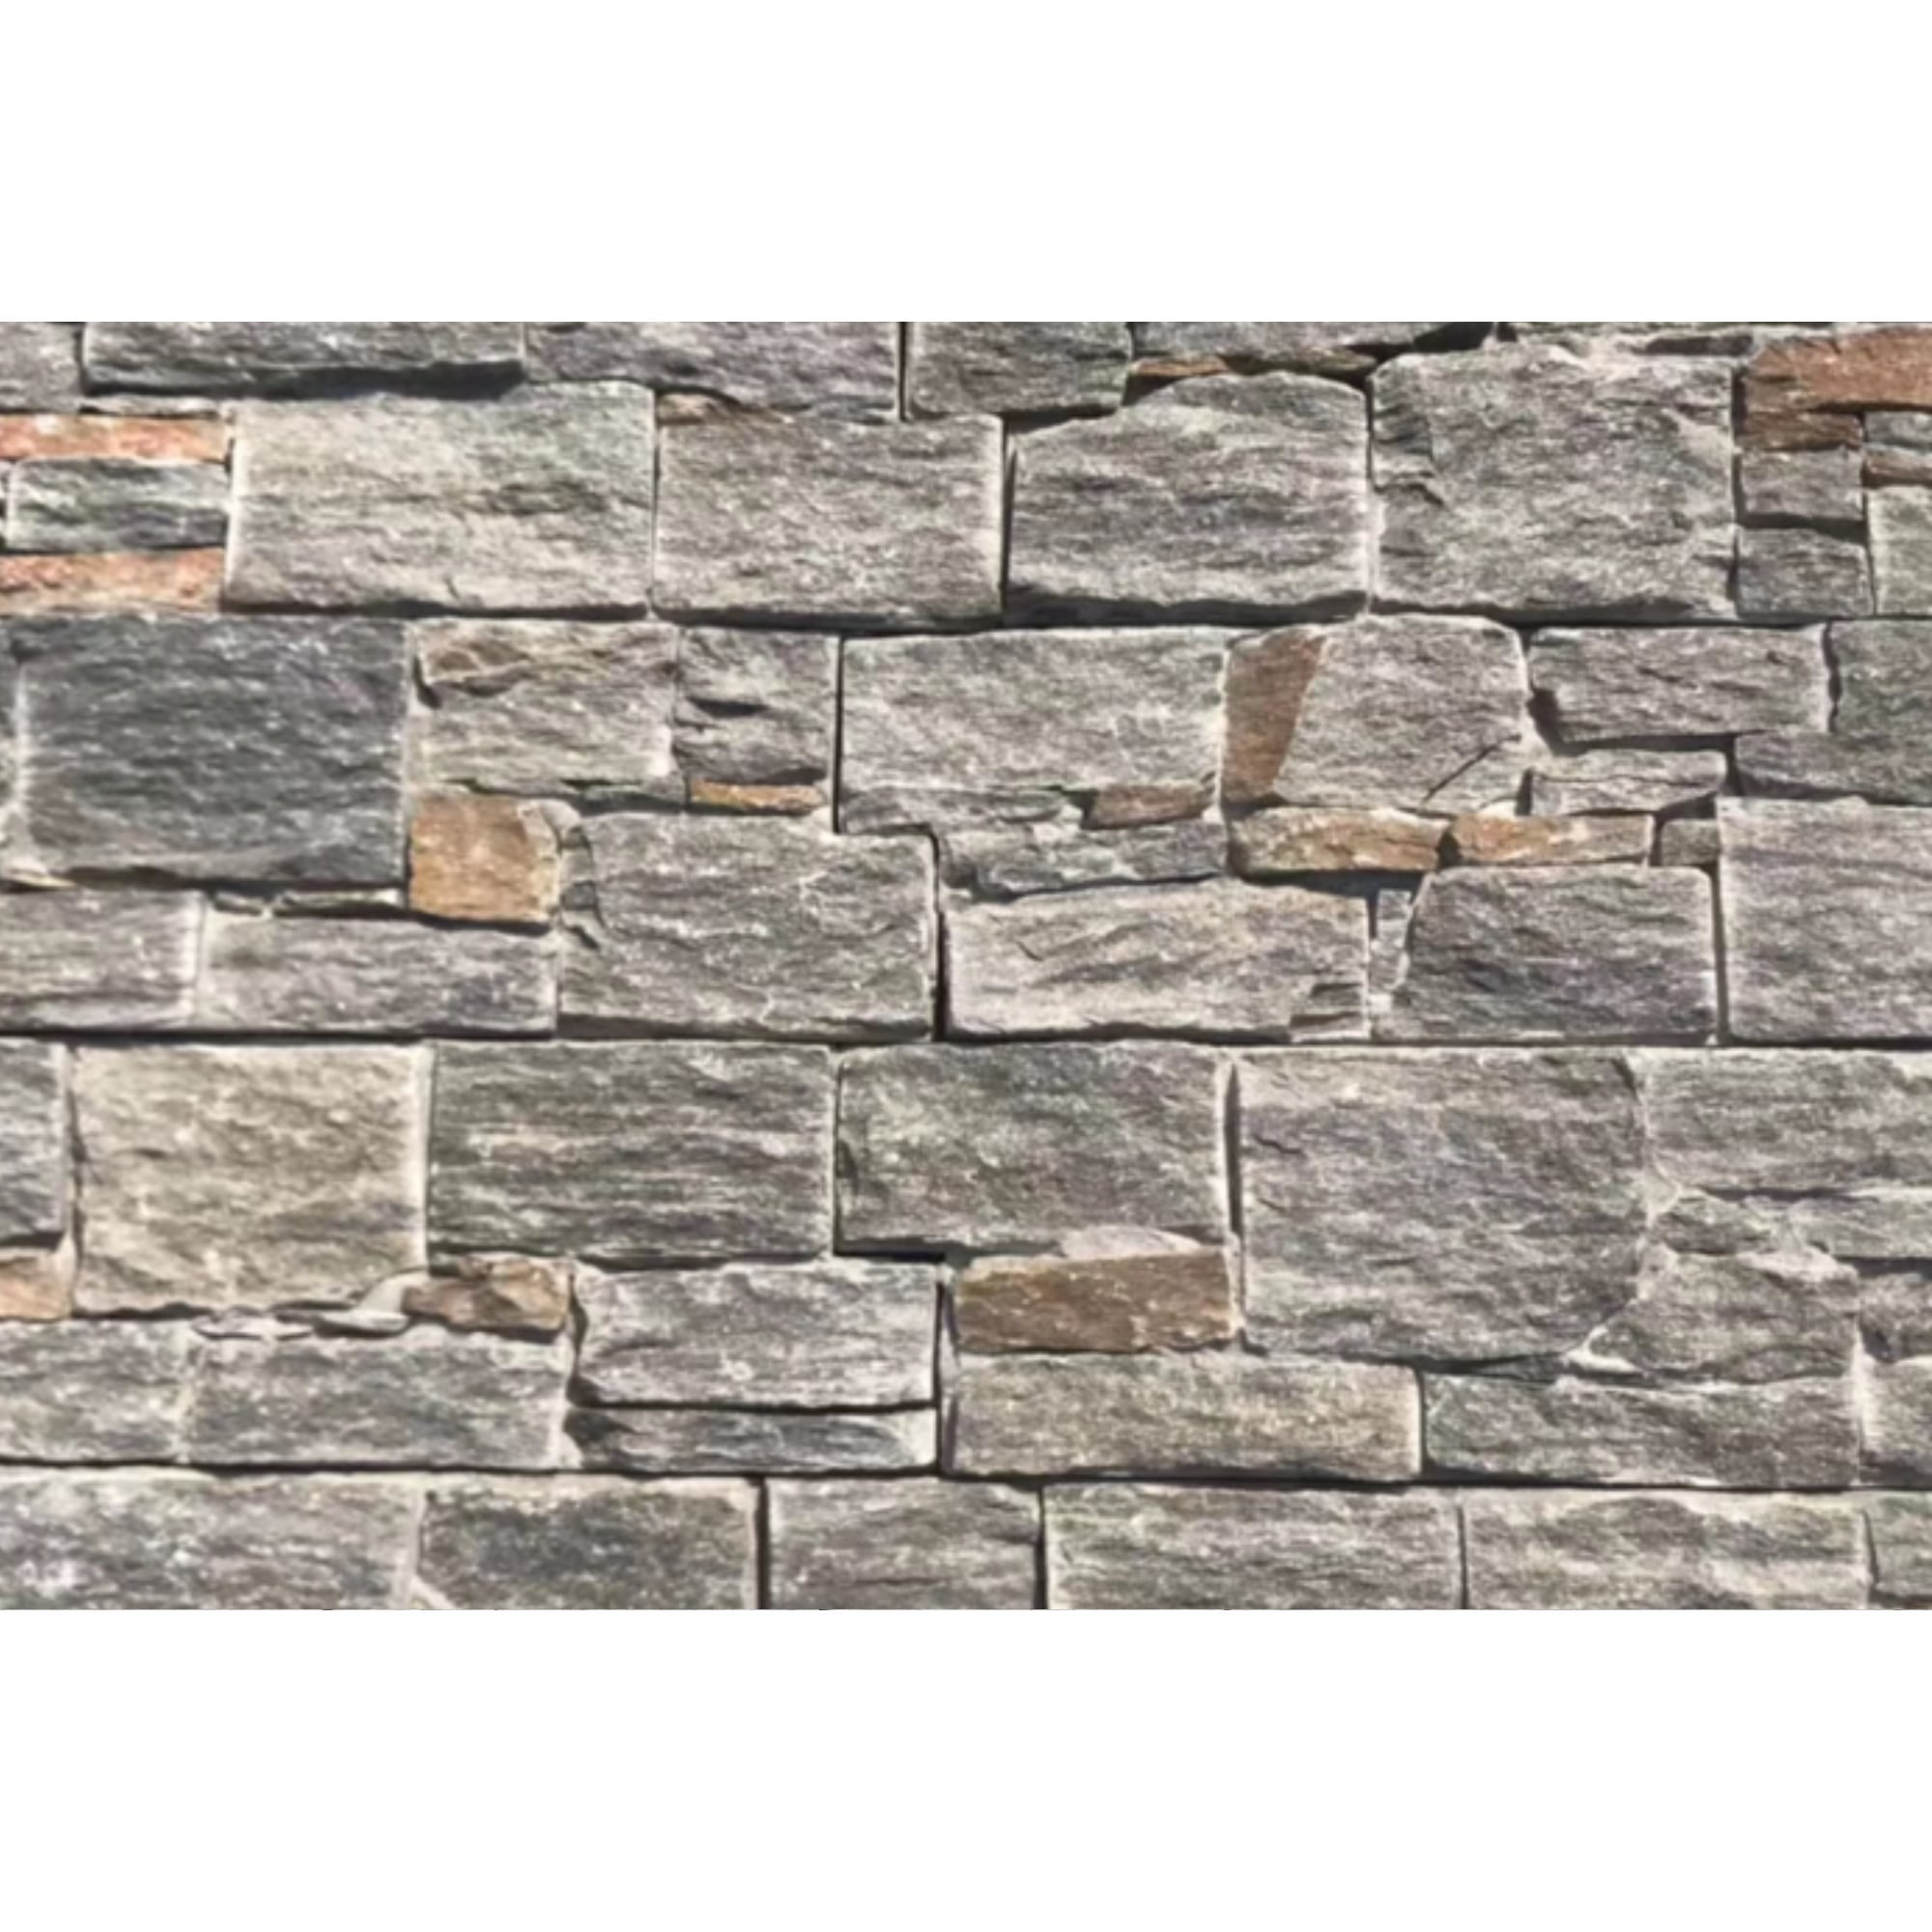 Natural Ledgestone Feature Wall Cladding Panels - Dark Grey Rustic Quartzite